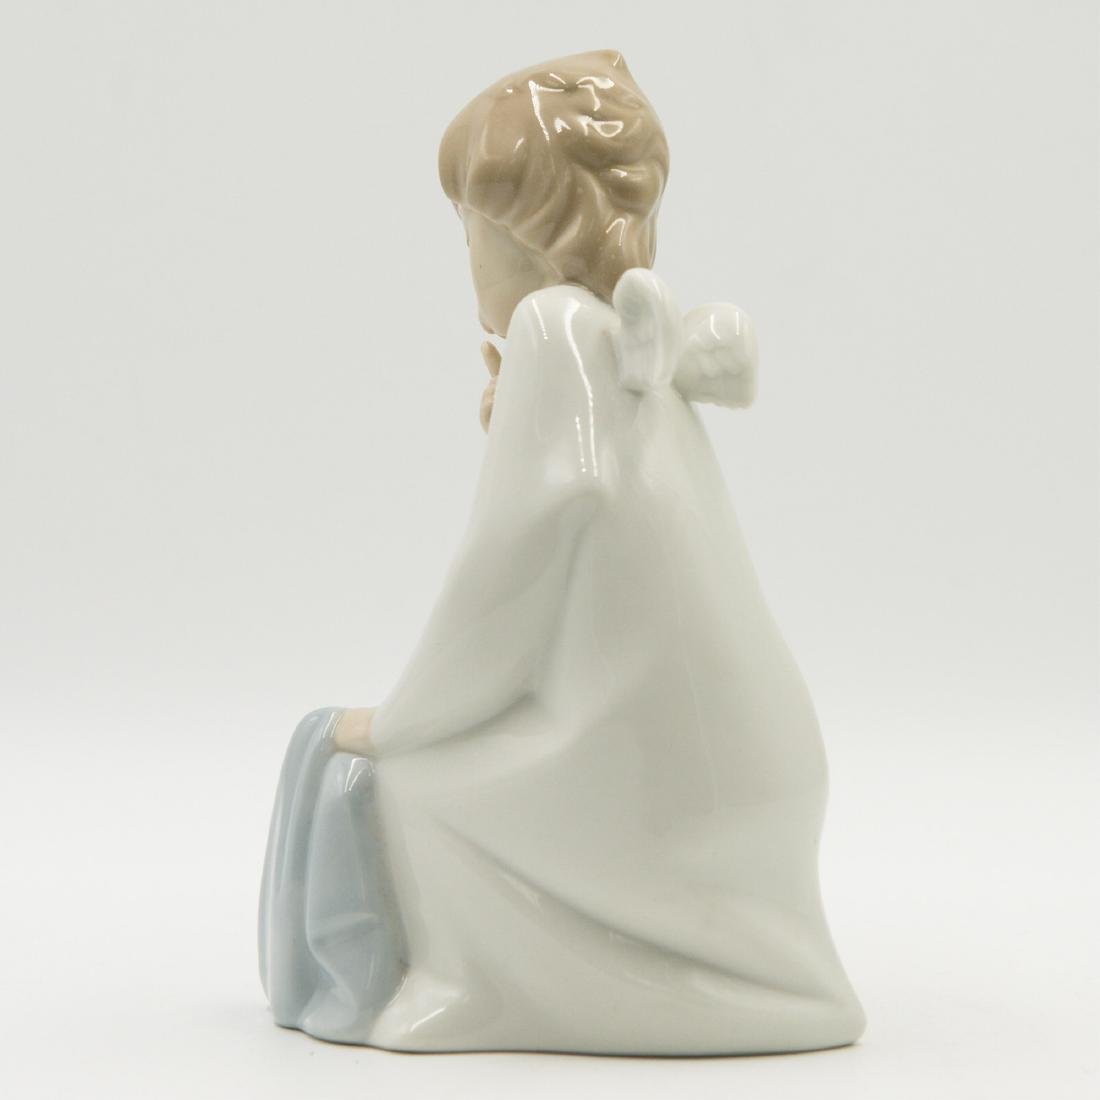 LLADRO ANGEL WITH BABY 4635 FIGURINE - 2